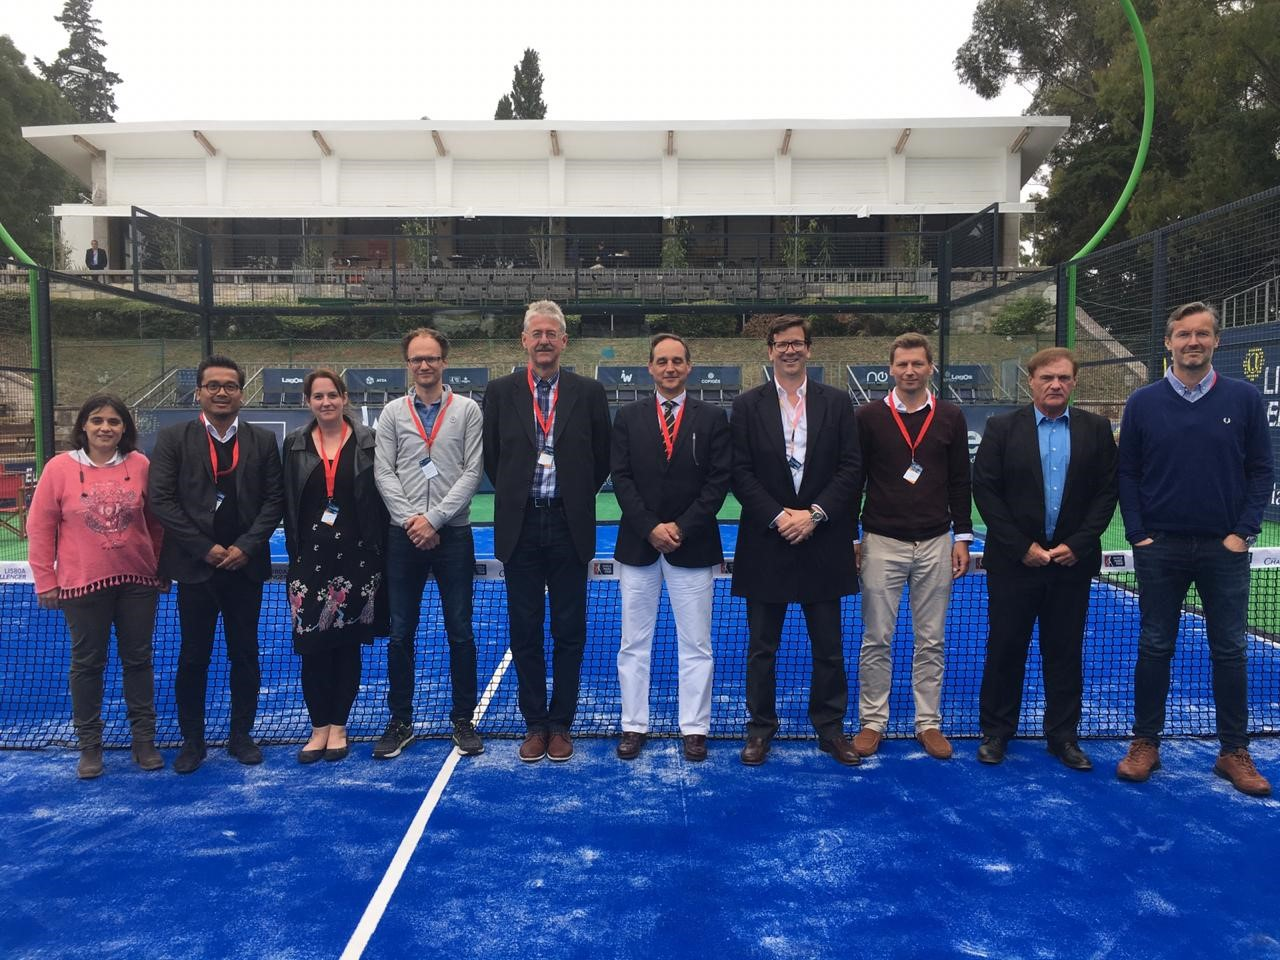 Public statement of the new founded European Padel Association